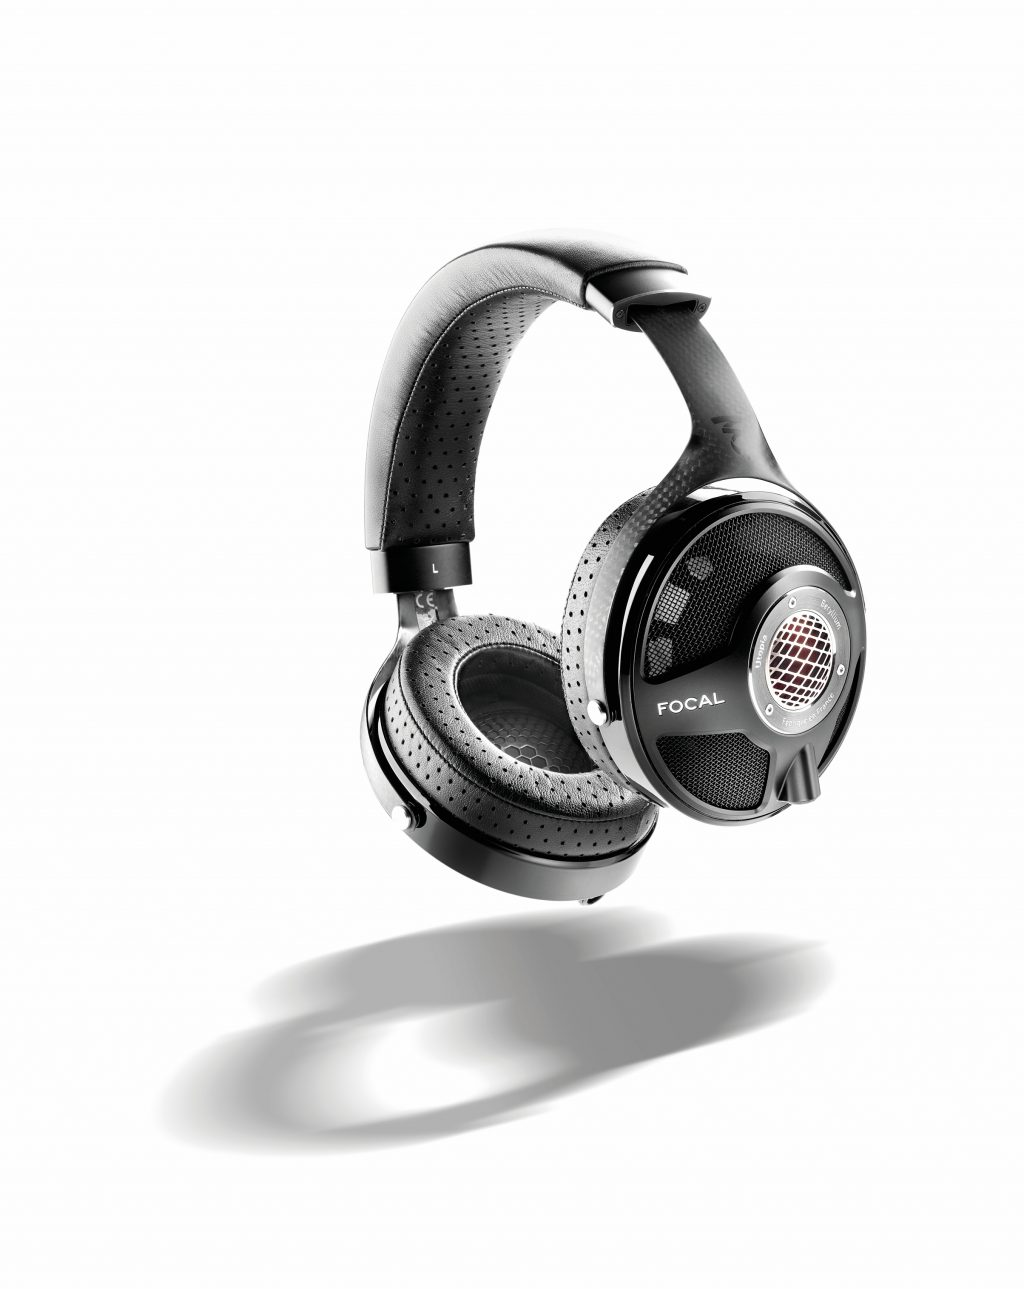 Focal launches a new line of High-End Headphones